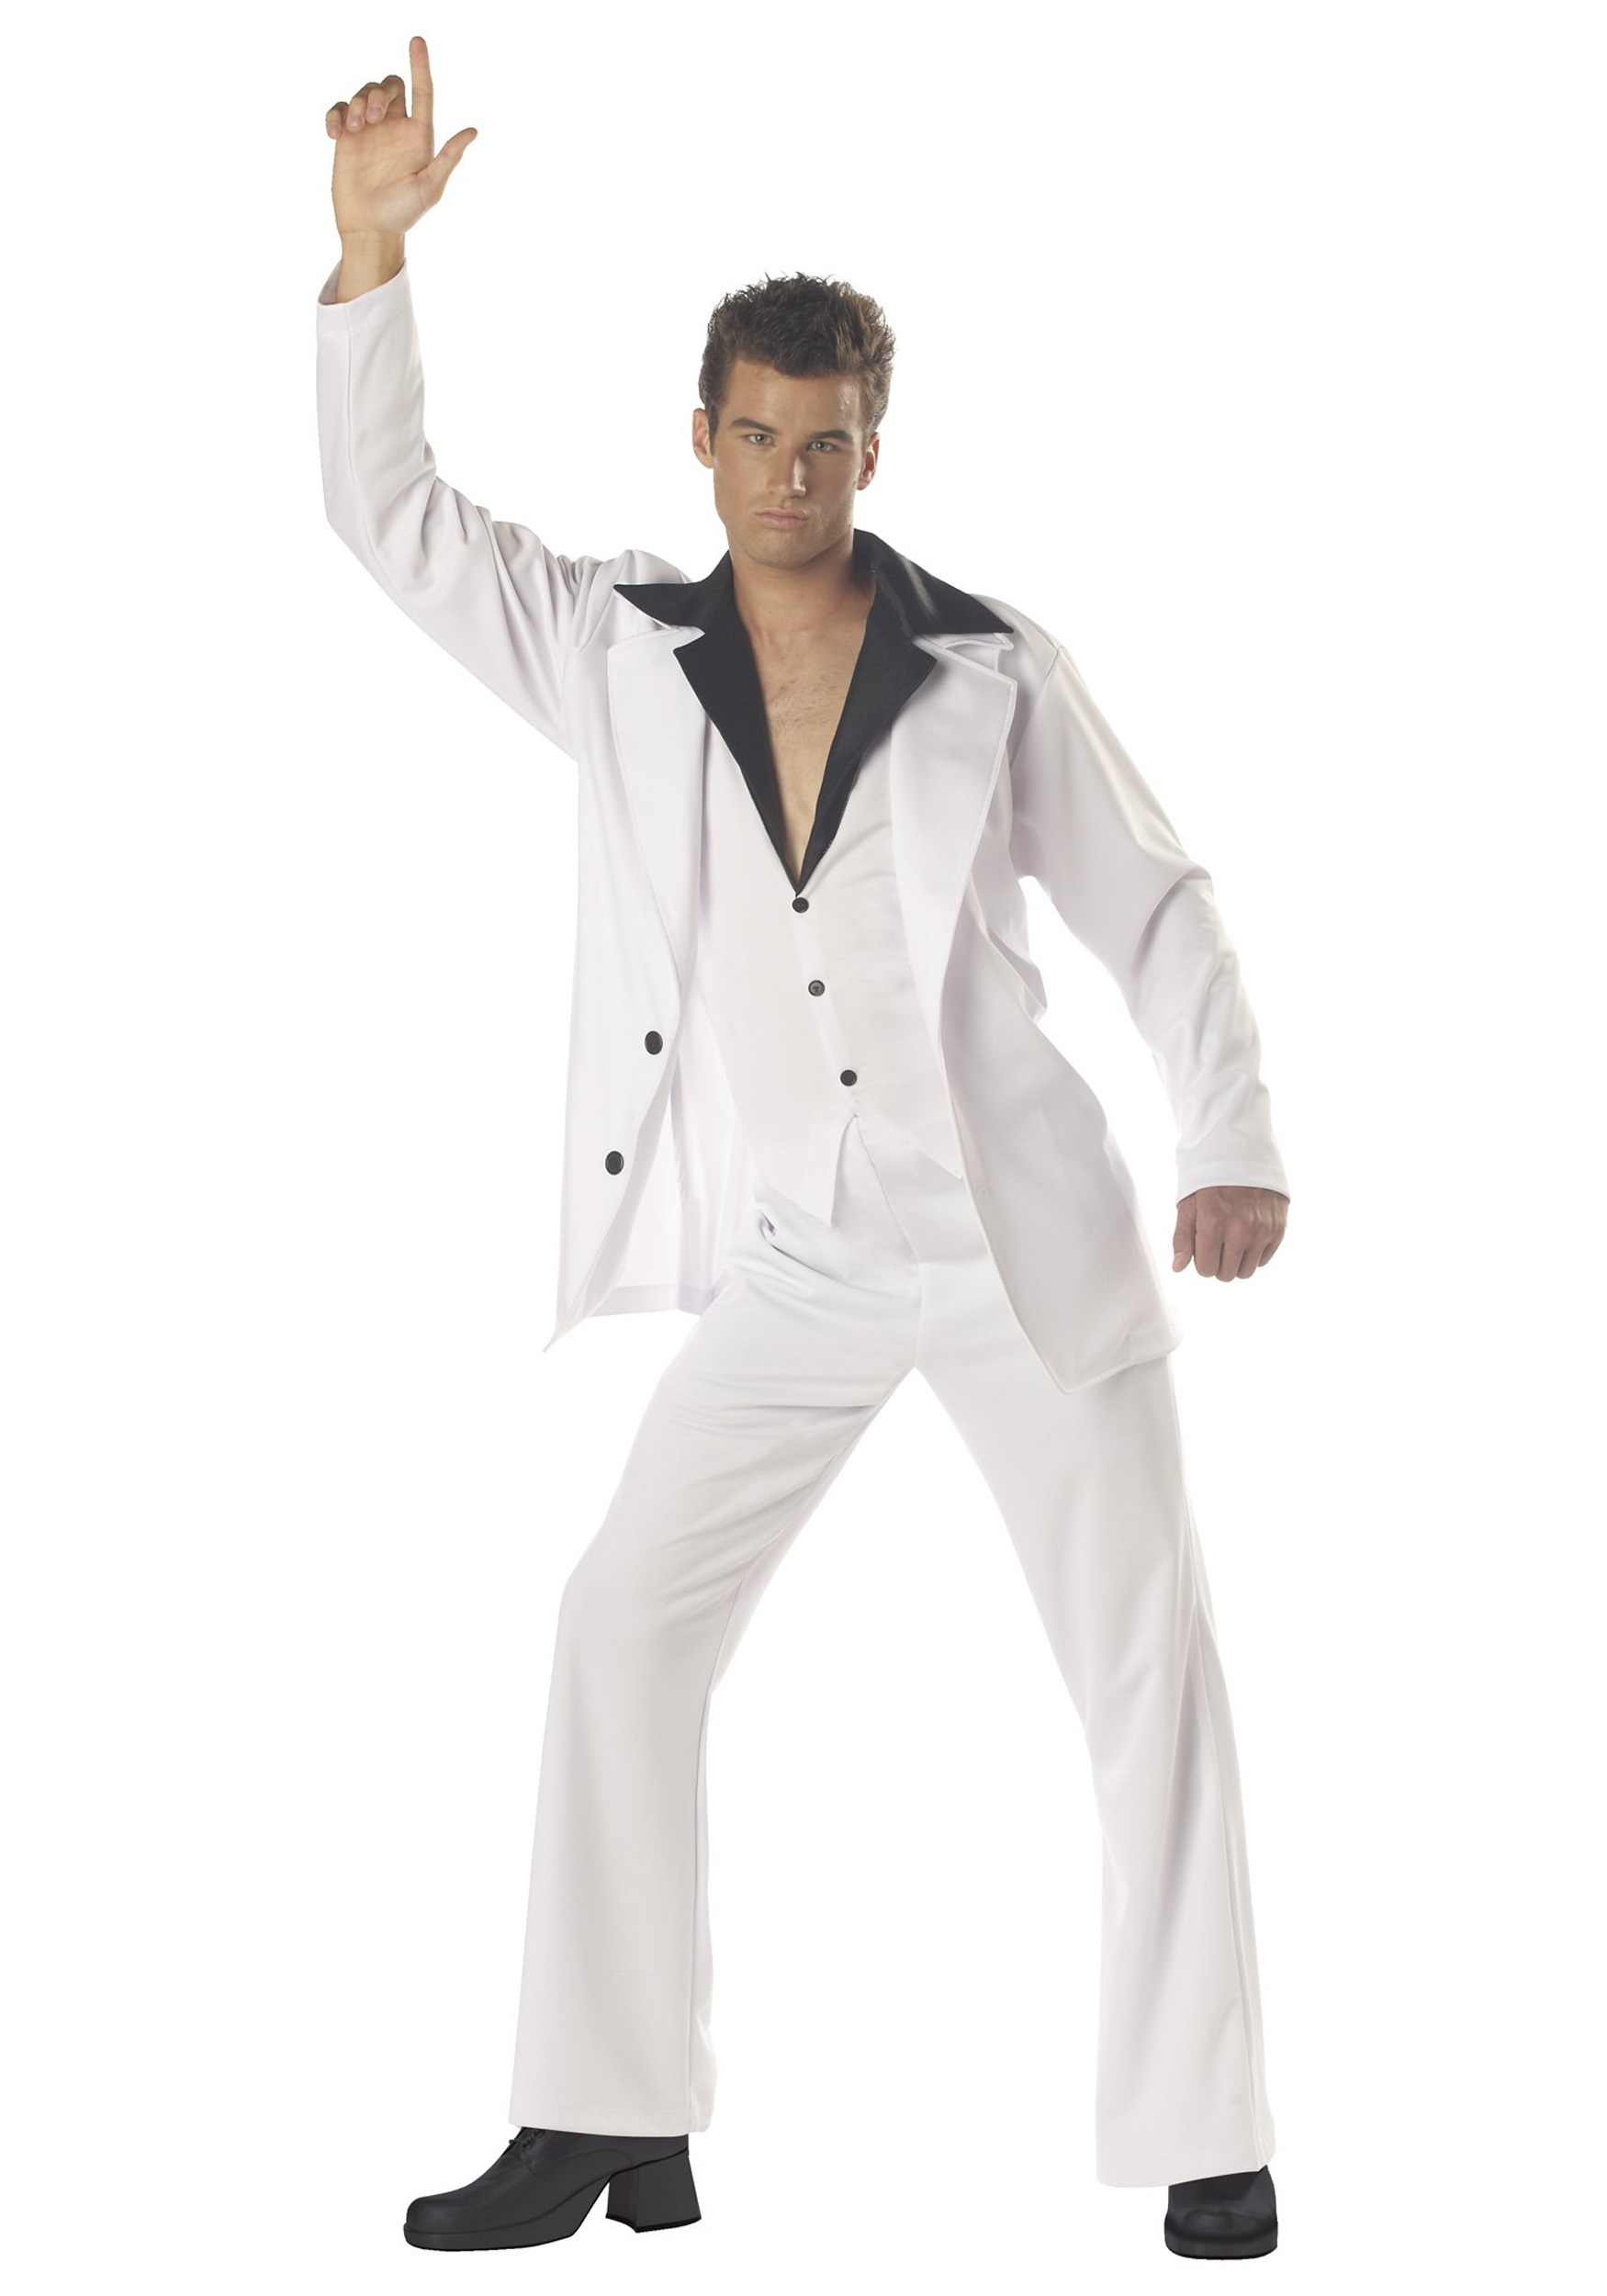 Men S Suits On Pinterest: Men's White Disco Suit Costume